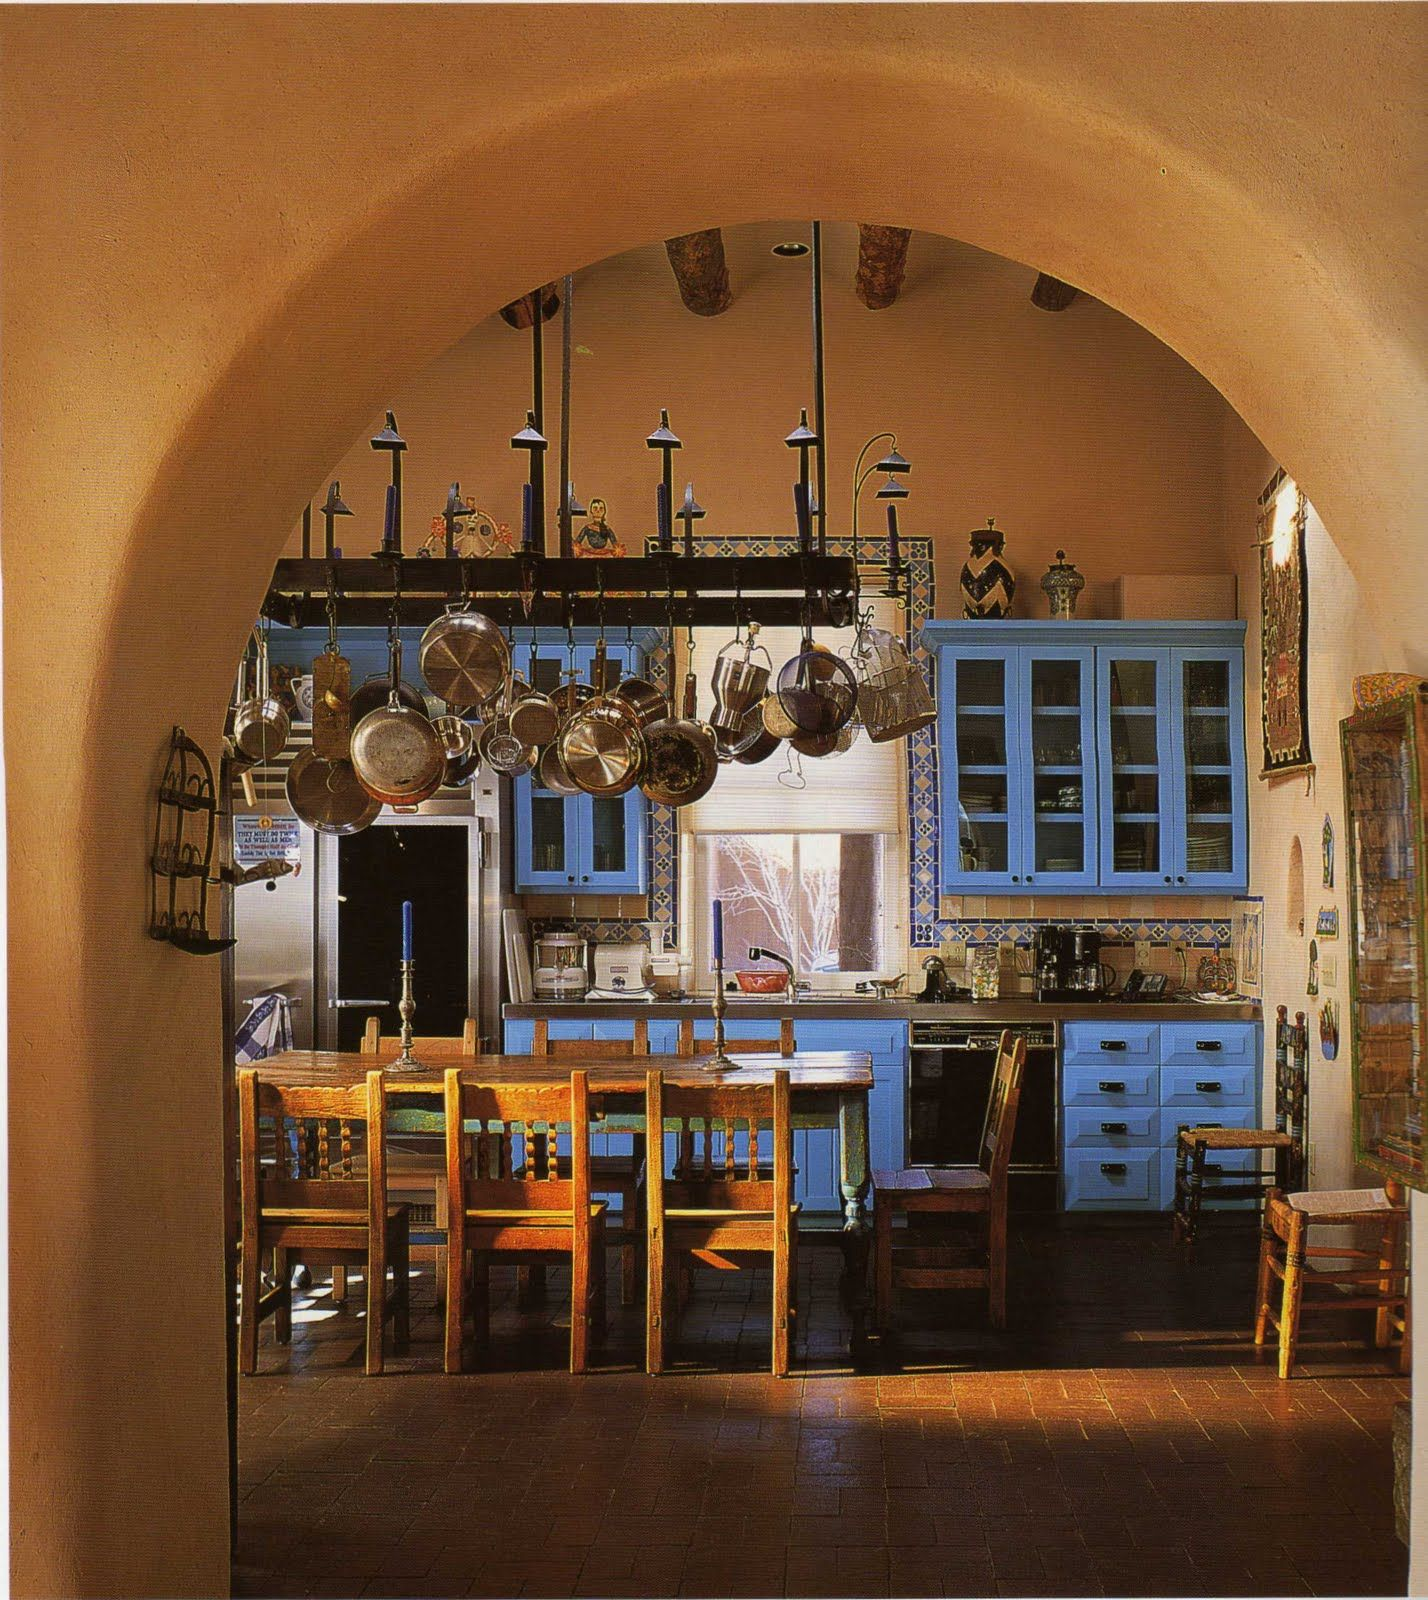 b499f2ff088709f5ee2ed6ffb093c61b Ideas For A Small Mexican Hacienda Kitchen on ideas for fireplace, ideas for a powder room, ideas for a small balcony, ideas for closet, ideas for offices, ideas for a mini bar, ideas for a home, ideas for dining room, ideas for a desk, ideas for a small foyer, ideas for bedroom, ideas for refrigerator, ideas for breakfast room, ideas for family room, ideas for a small sunroom, ideas for a small business, ideas for a sitting room, ideas for a teen room, ideas for a small entryway, ideas for living space,